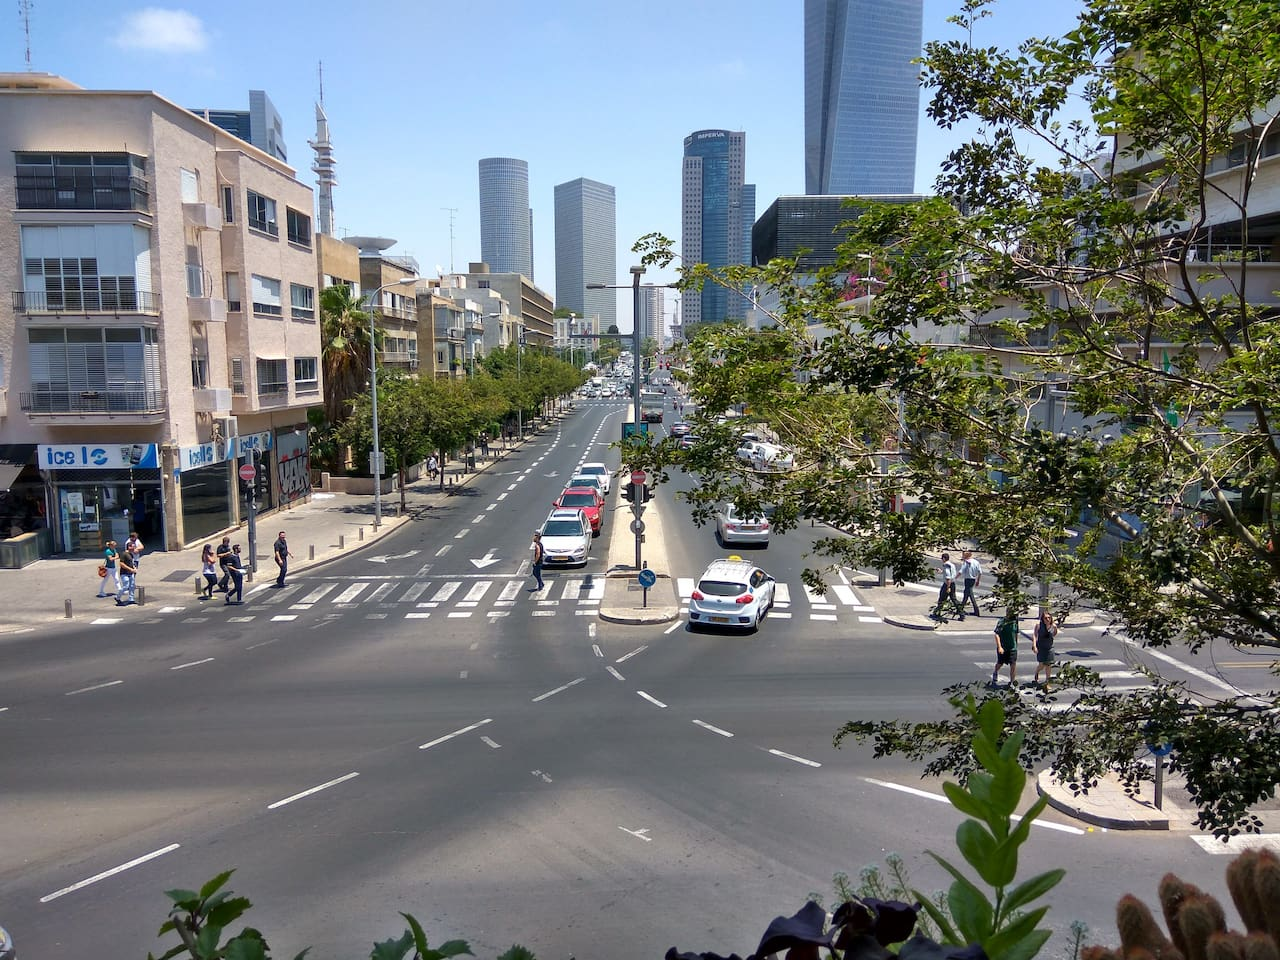 TEL AVIV CENTER (view from the window)